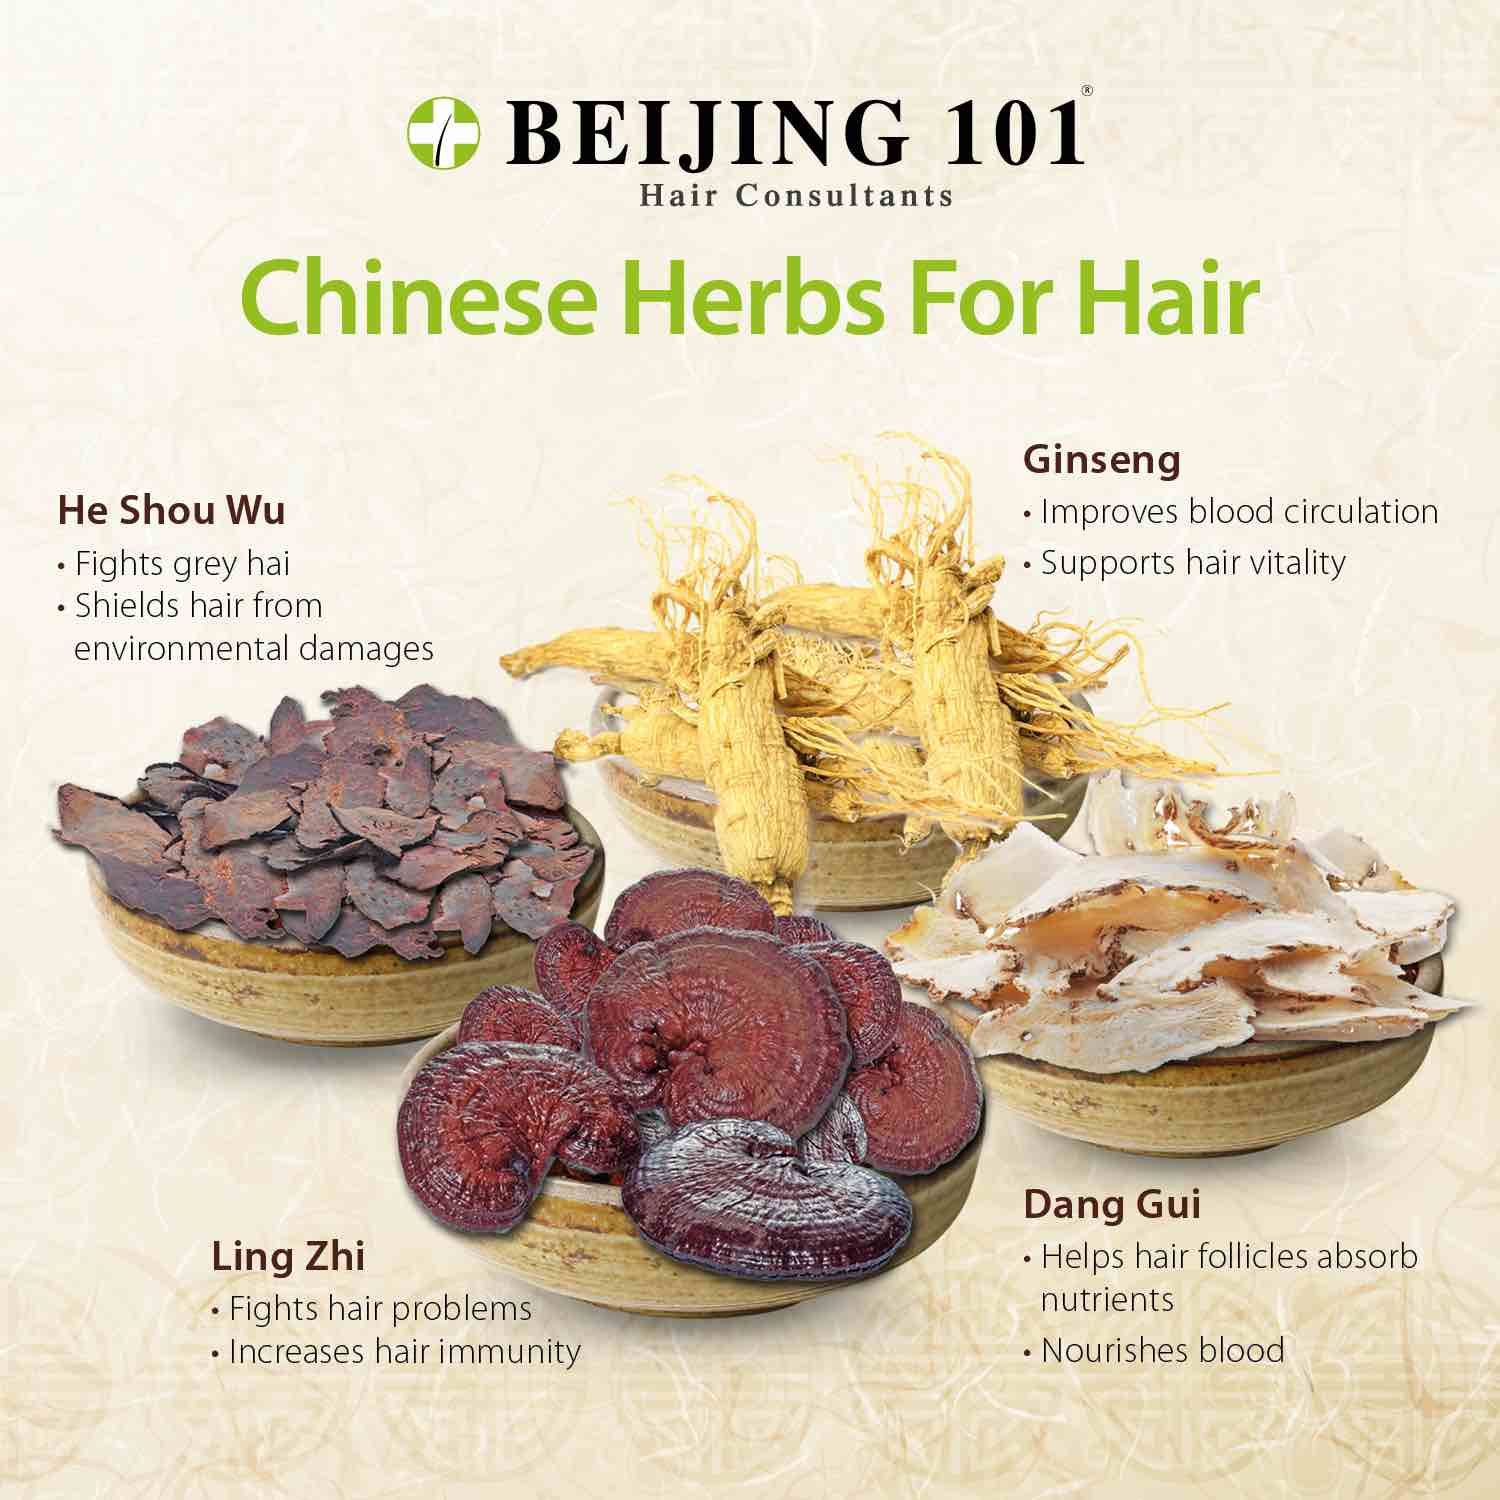 beijing-101-use-of-chinese-herbs-to-curb-hair-loss-aspirantsg